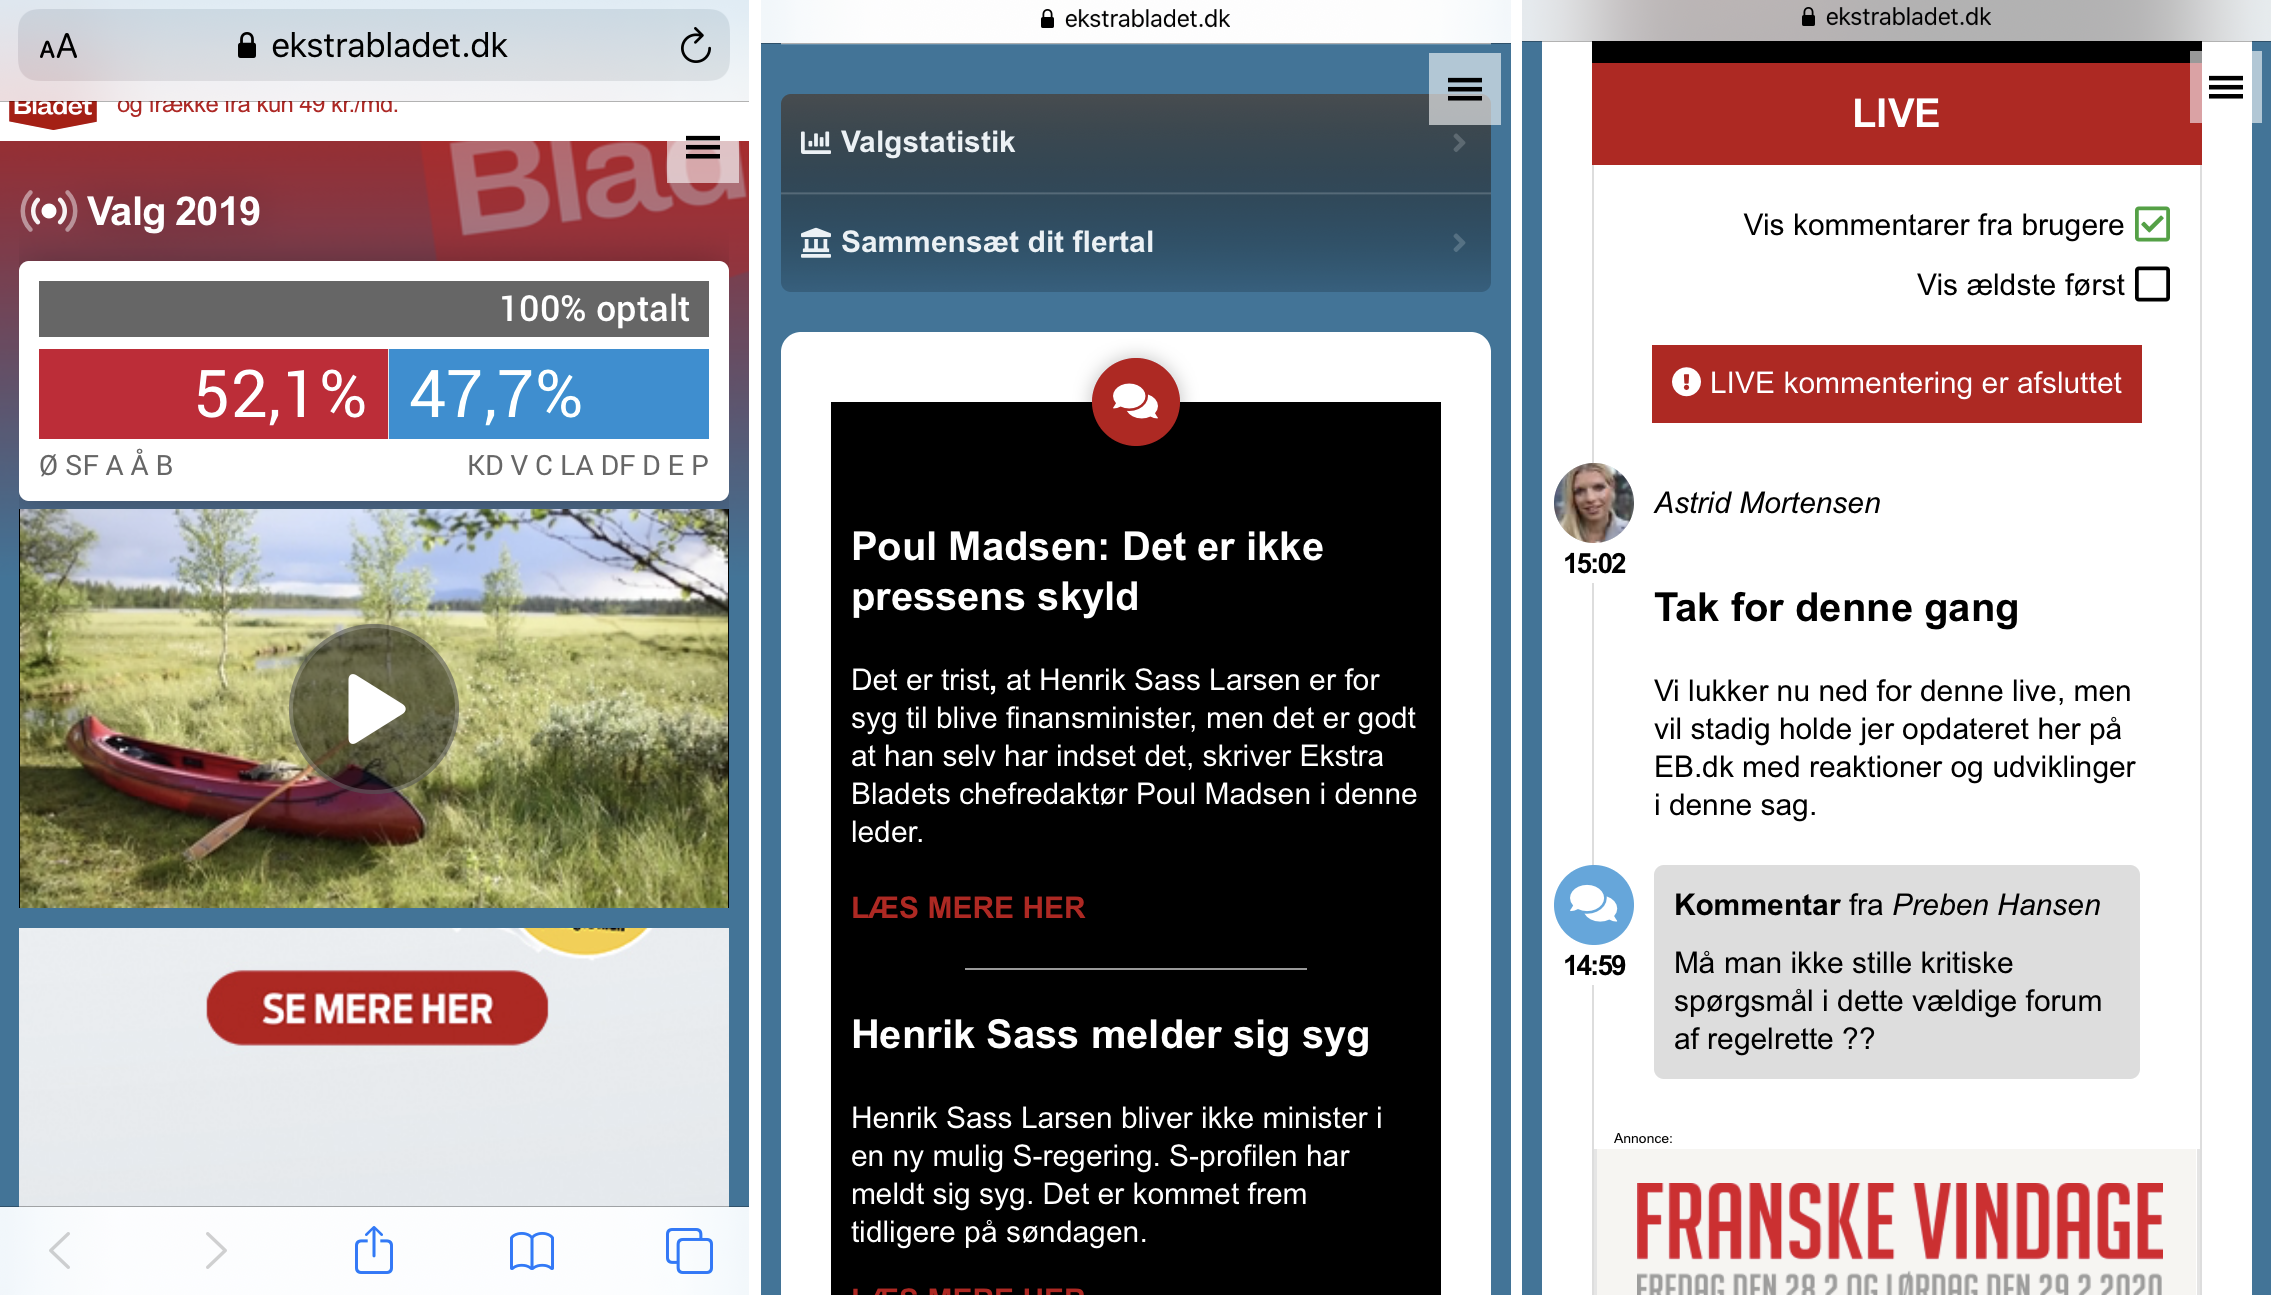 Superlive: Building a second frontpage for election coverage